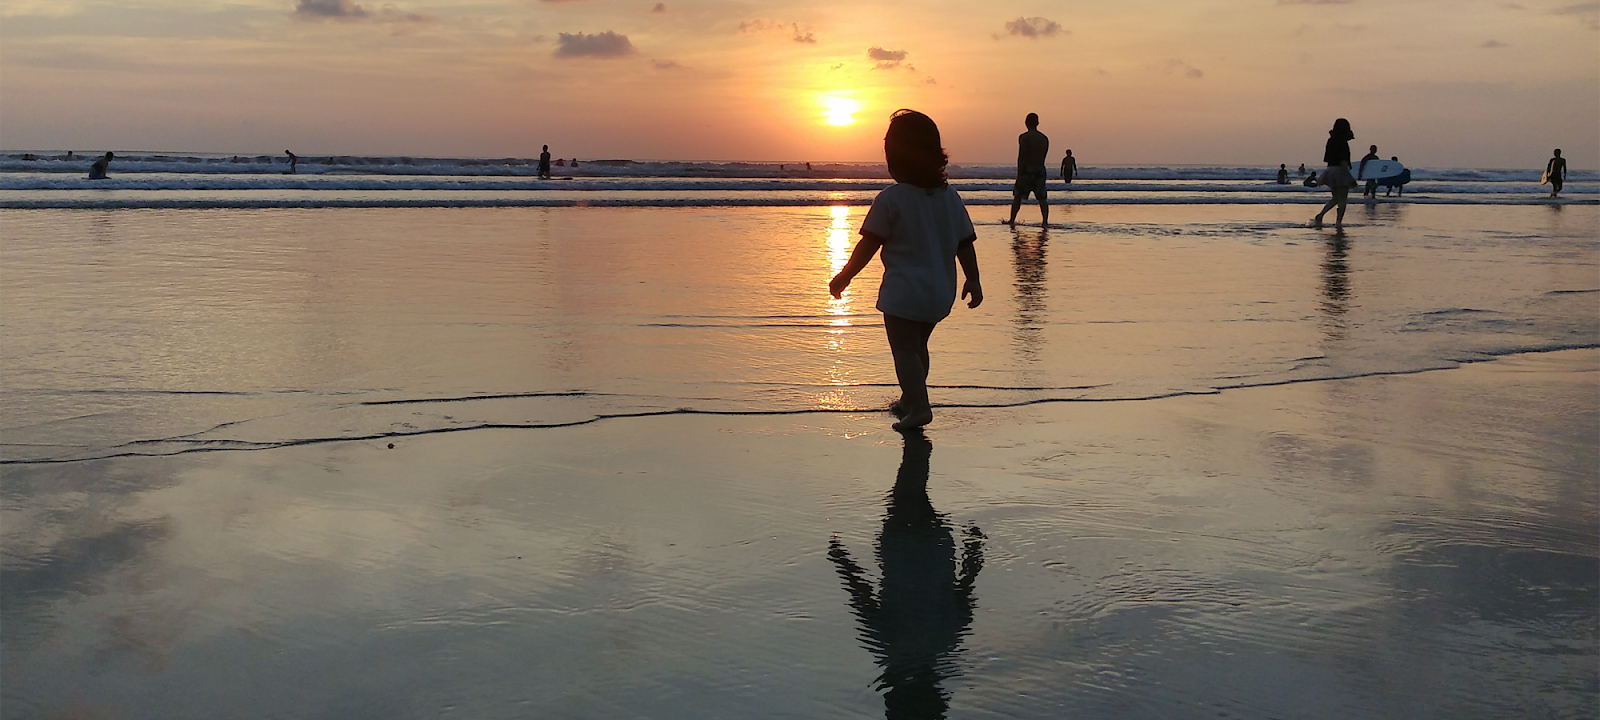 beautyful sunset in kuta Bali